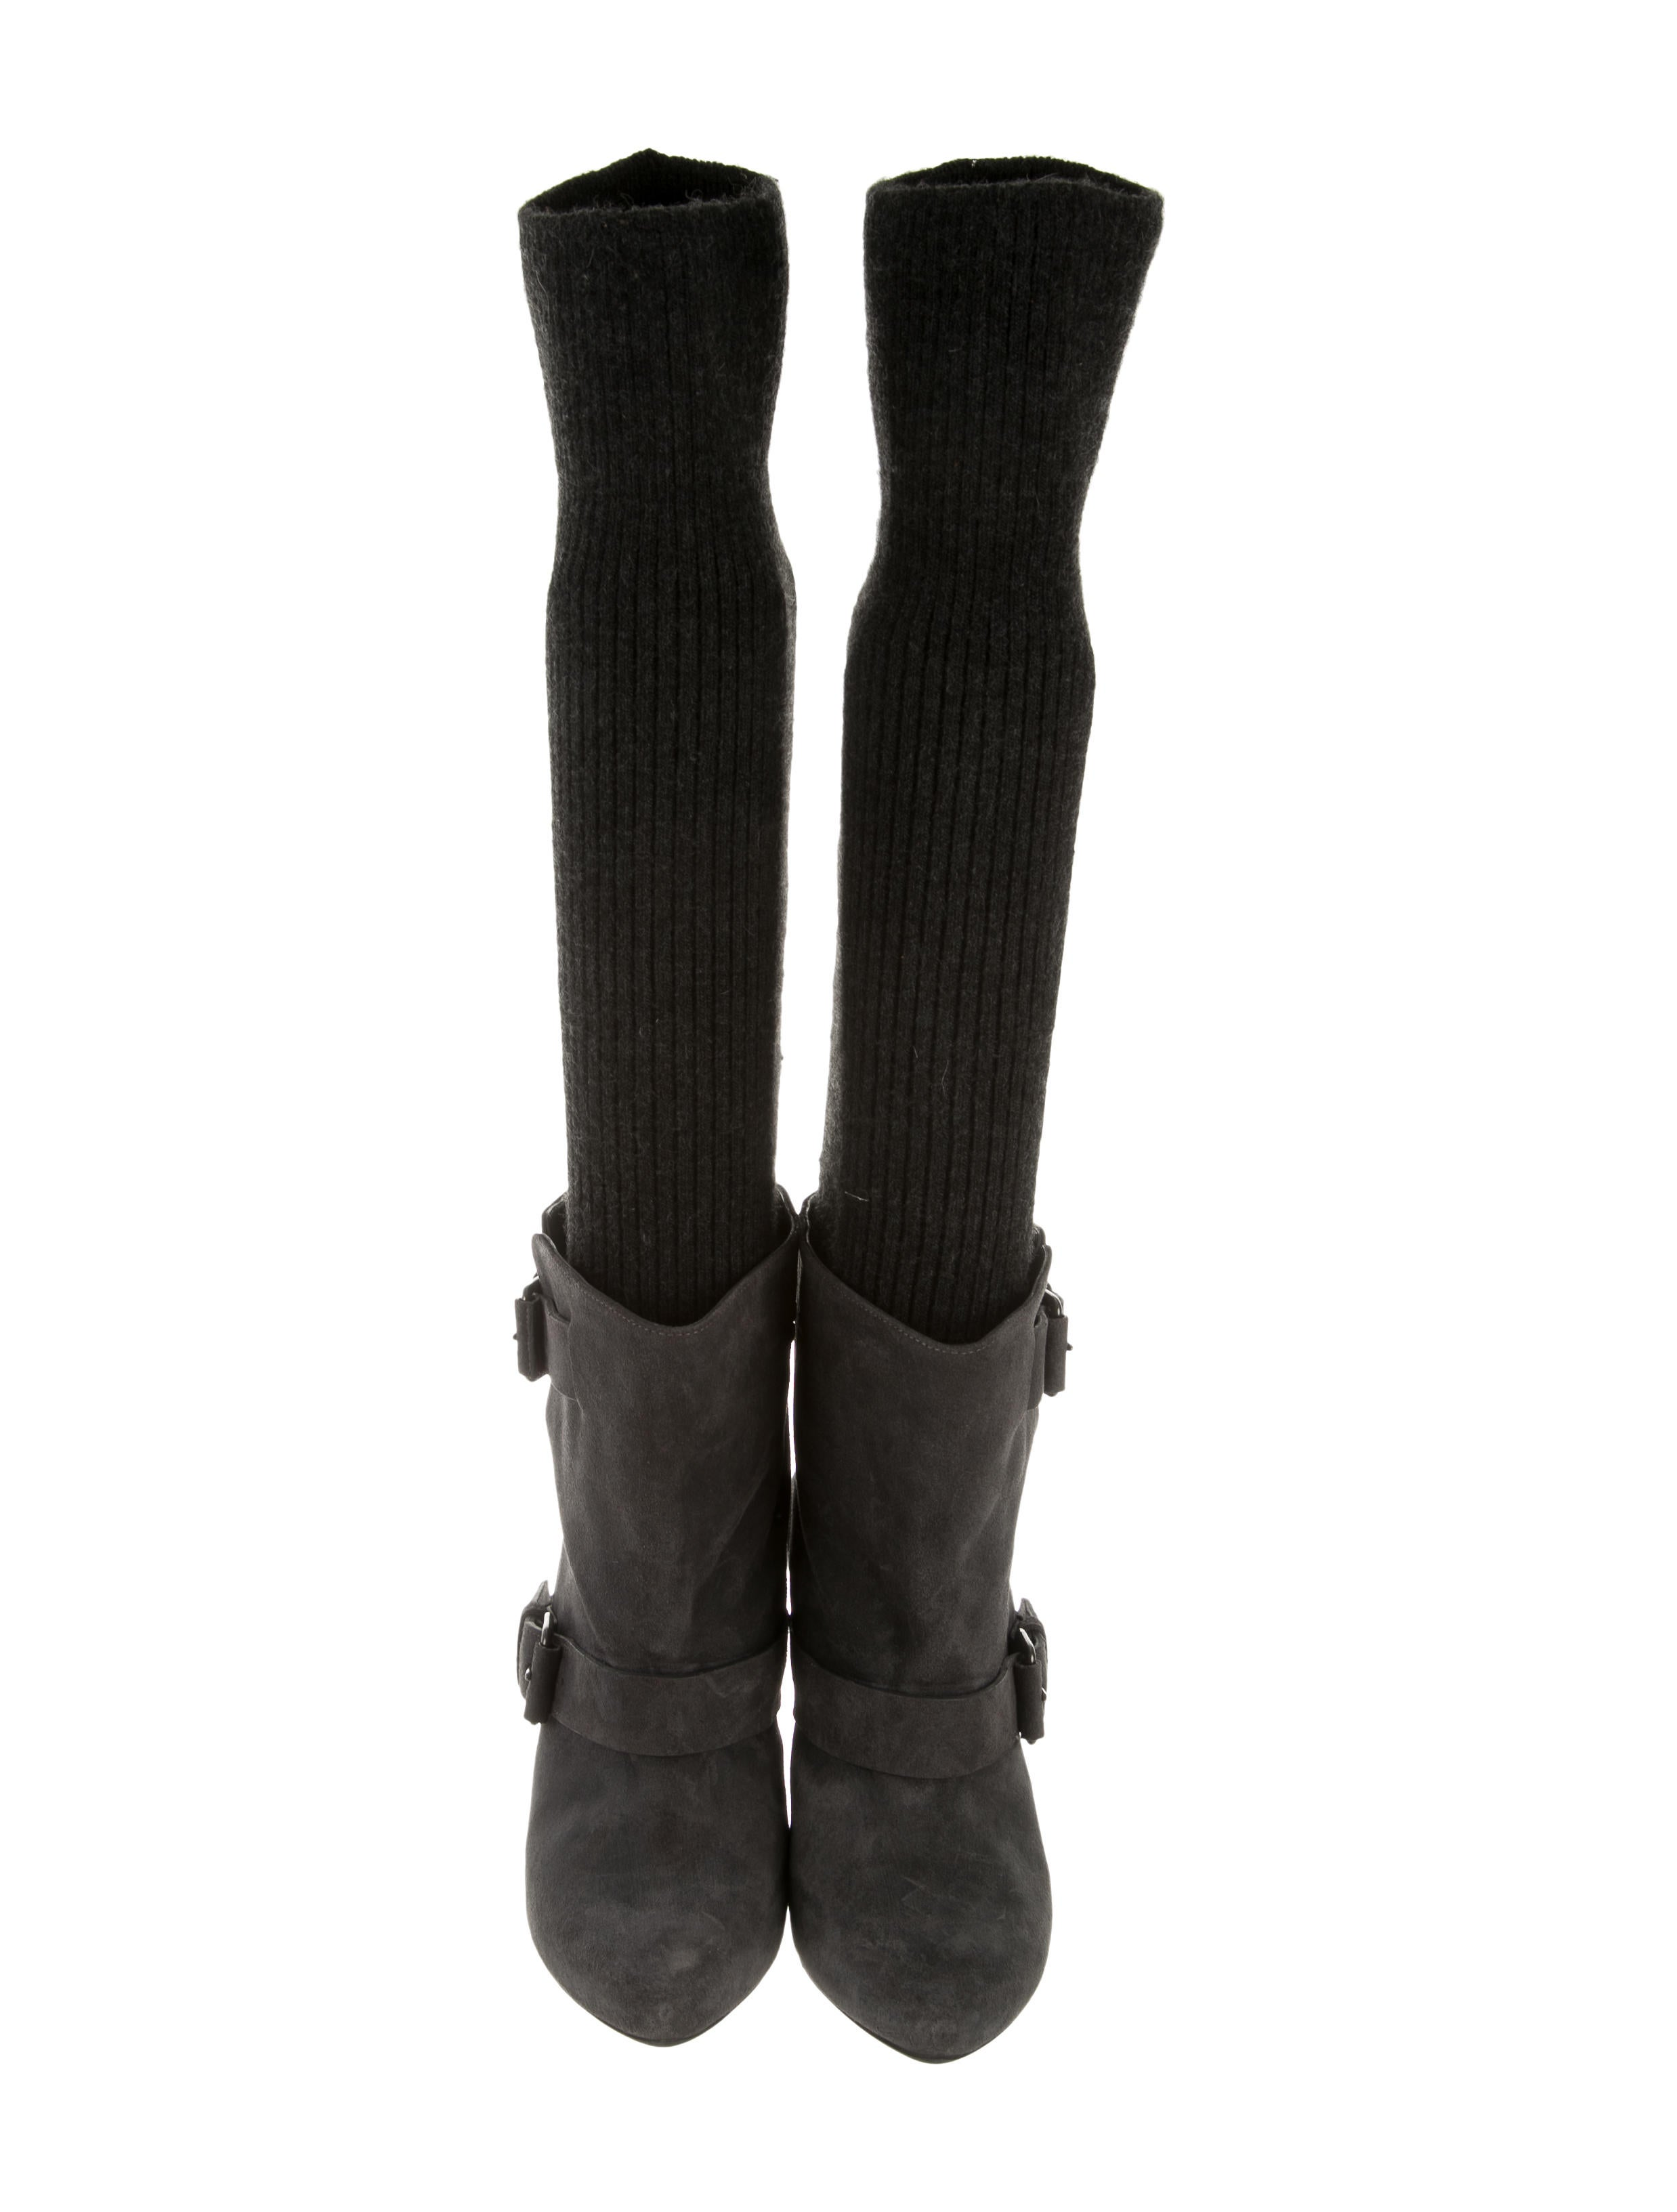 givenchy rib knit knee high boots shoes giv33747 the